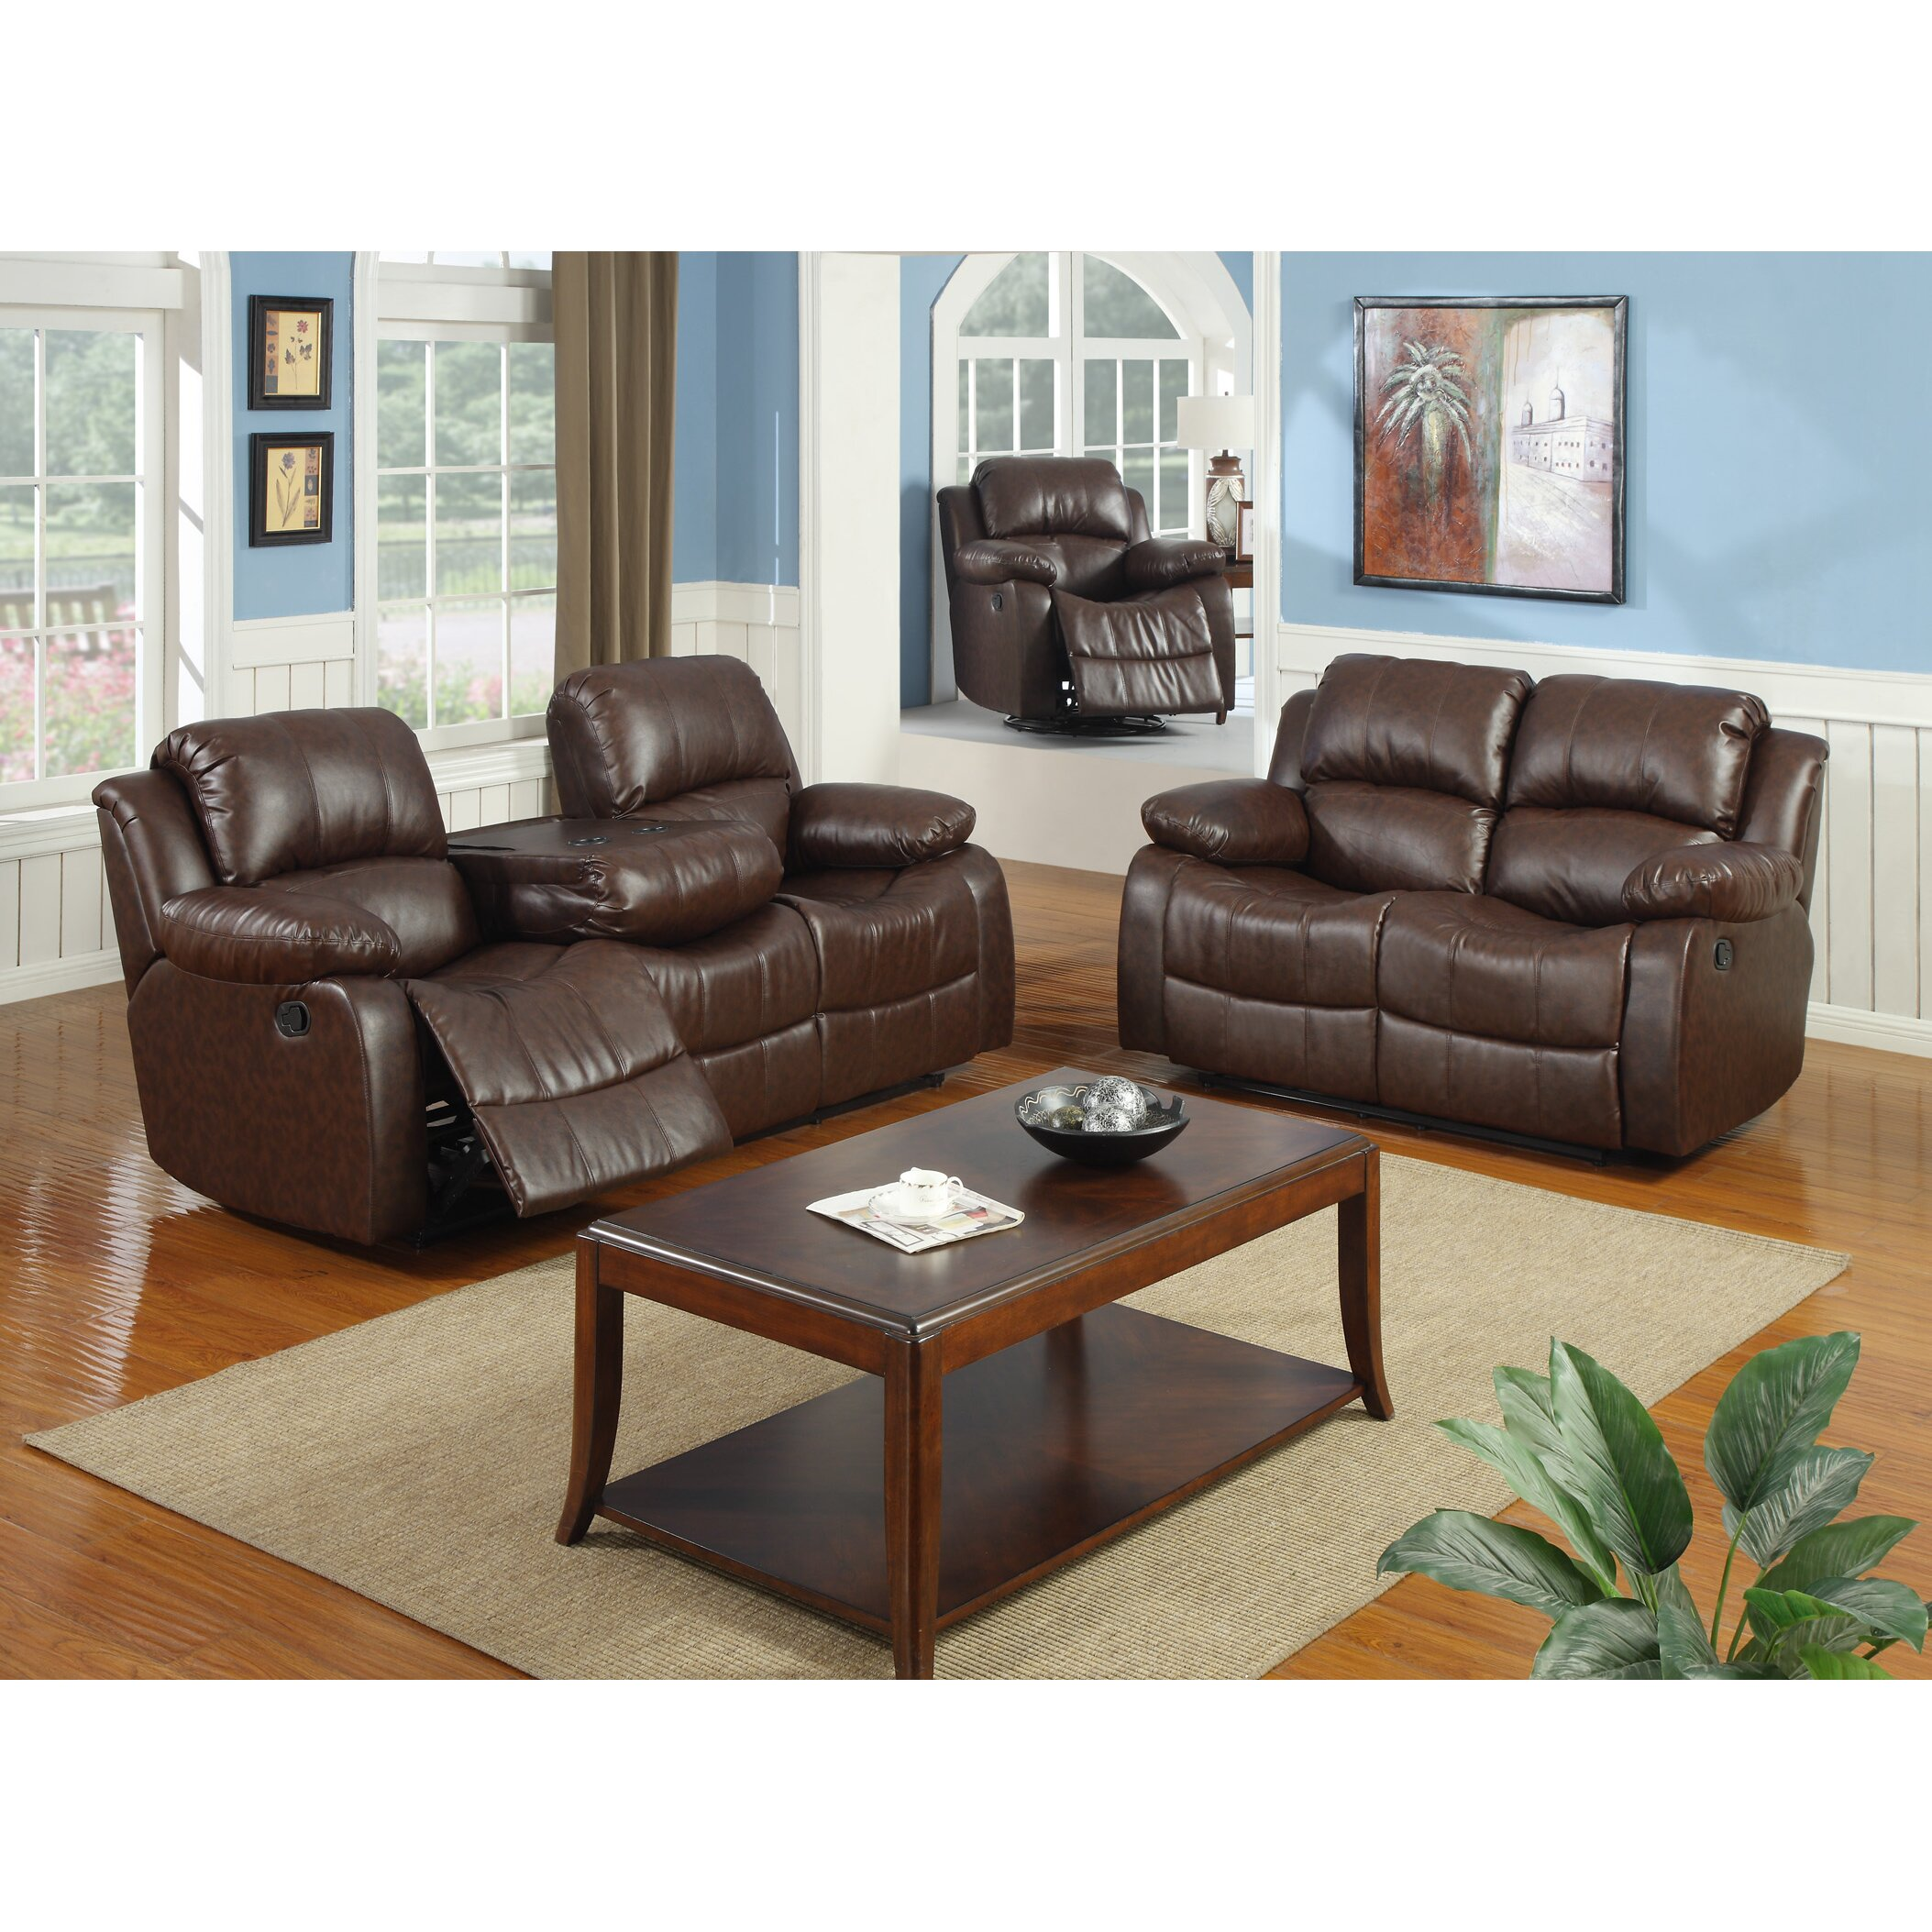 Best Quality Furniture Bonded Leather 3 Piece Recliner Living Room Set Wayfair